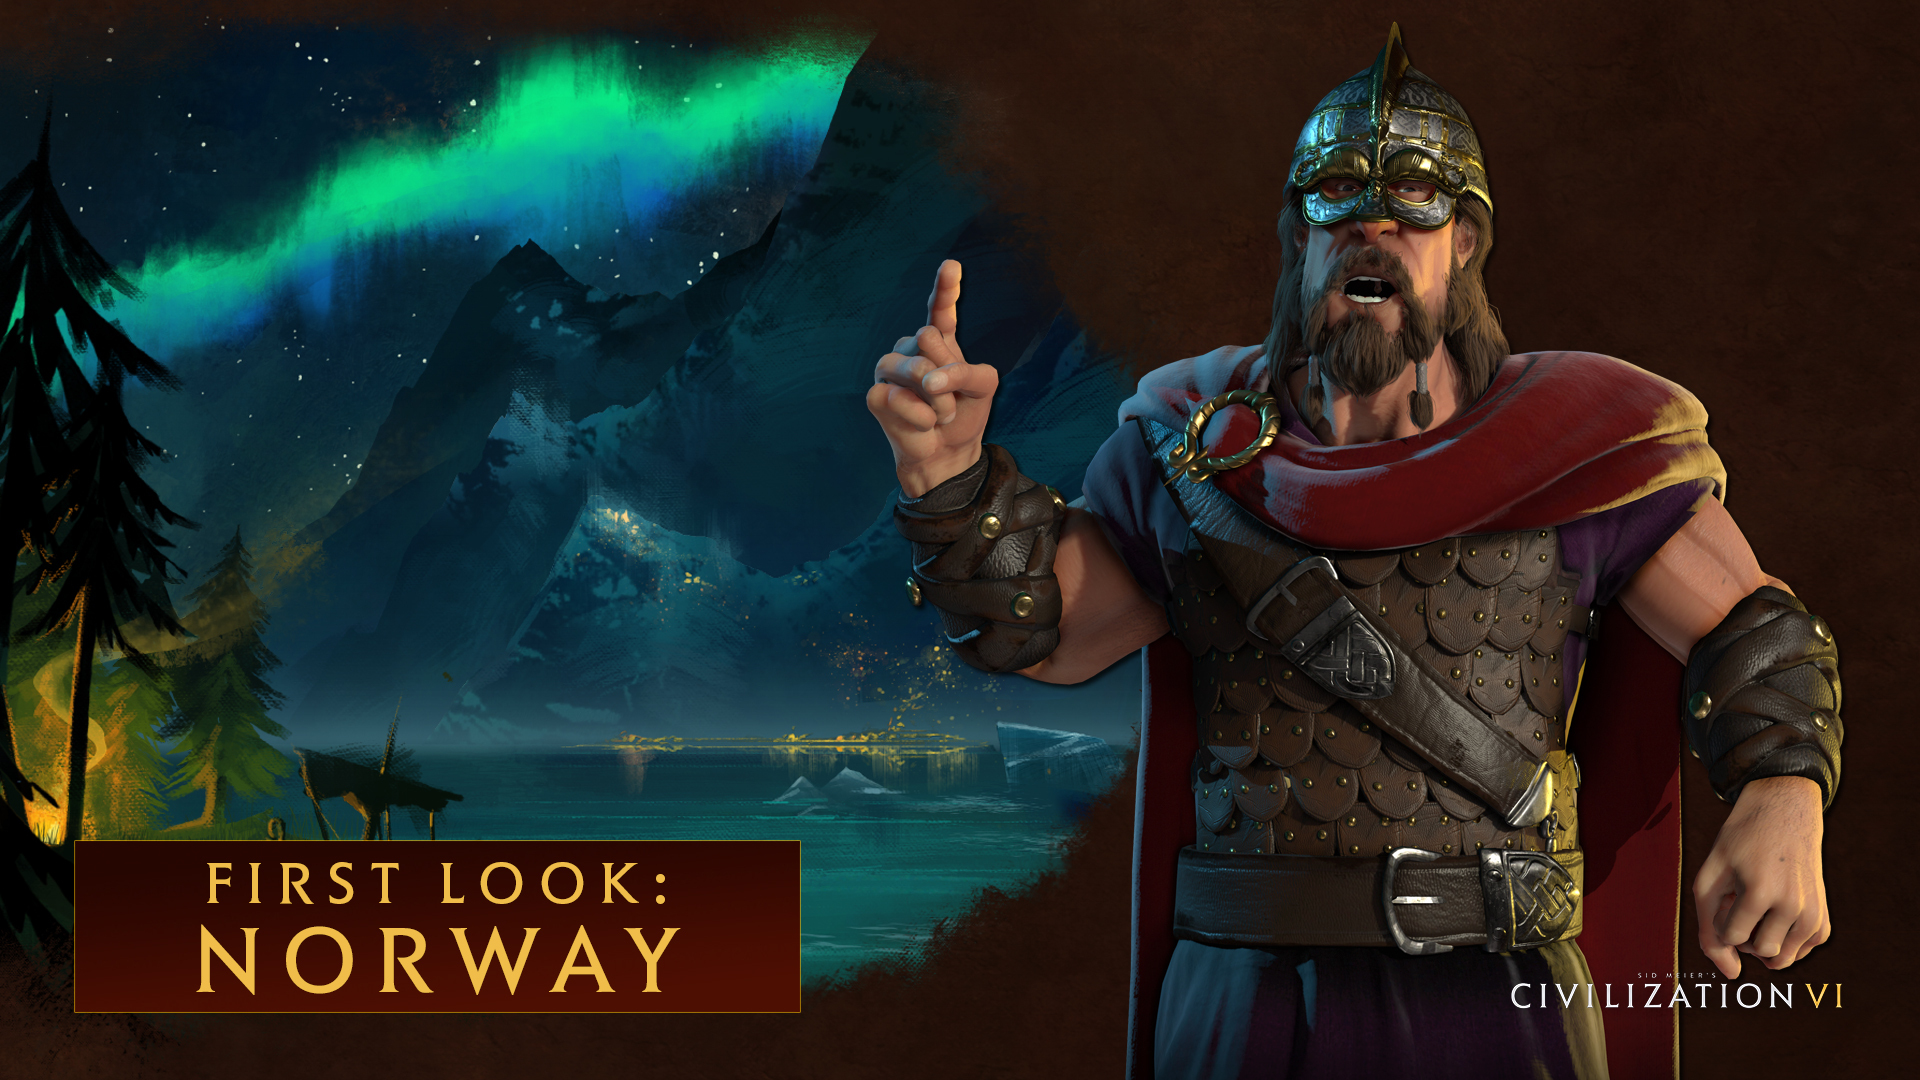 Harald Hardrada Leads Norway in Civilization 6